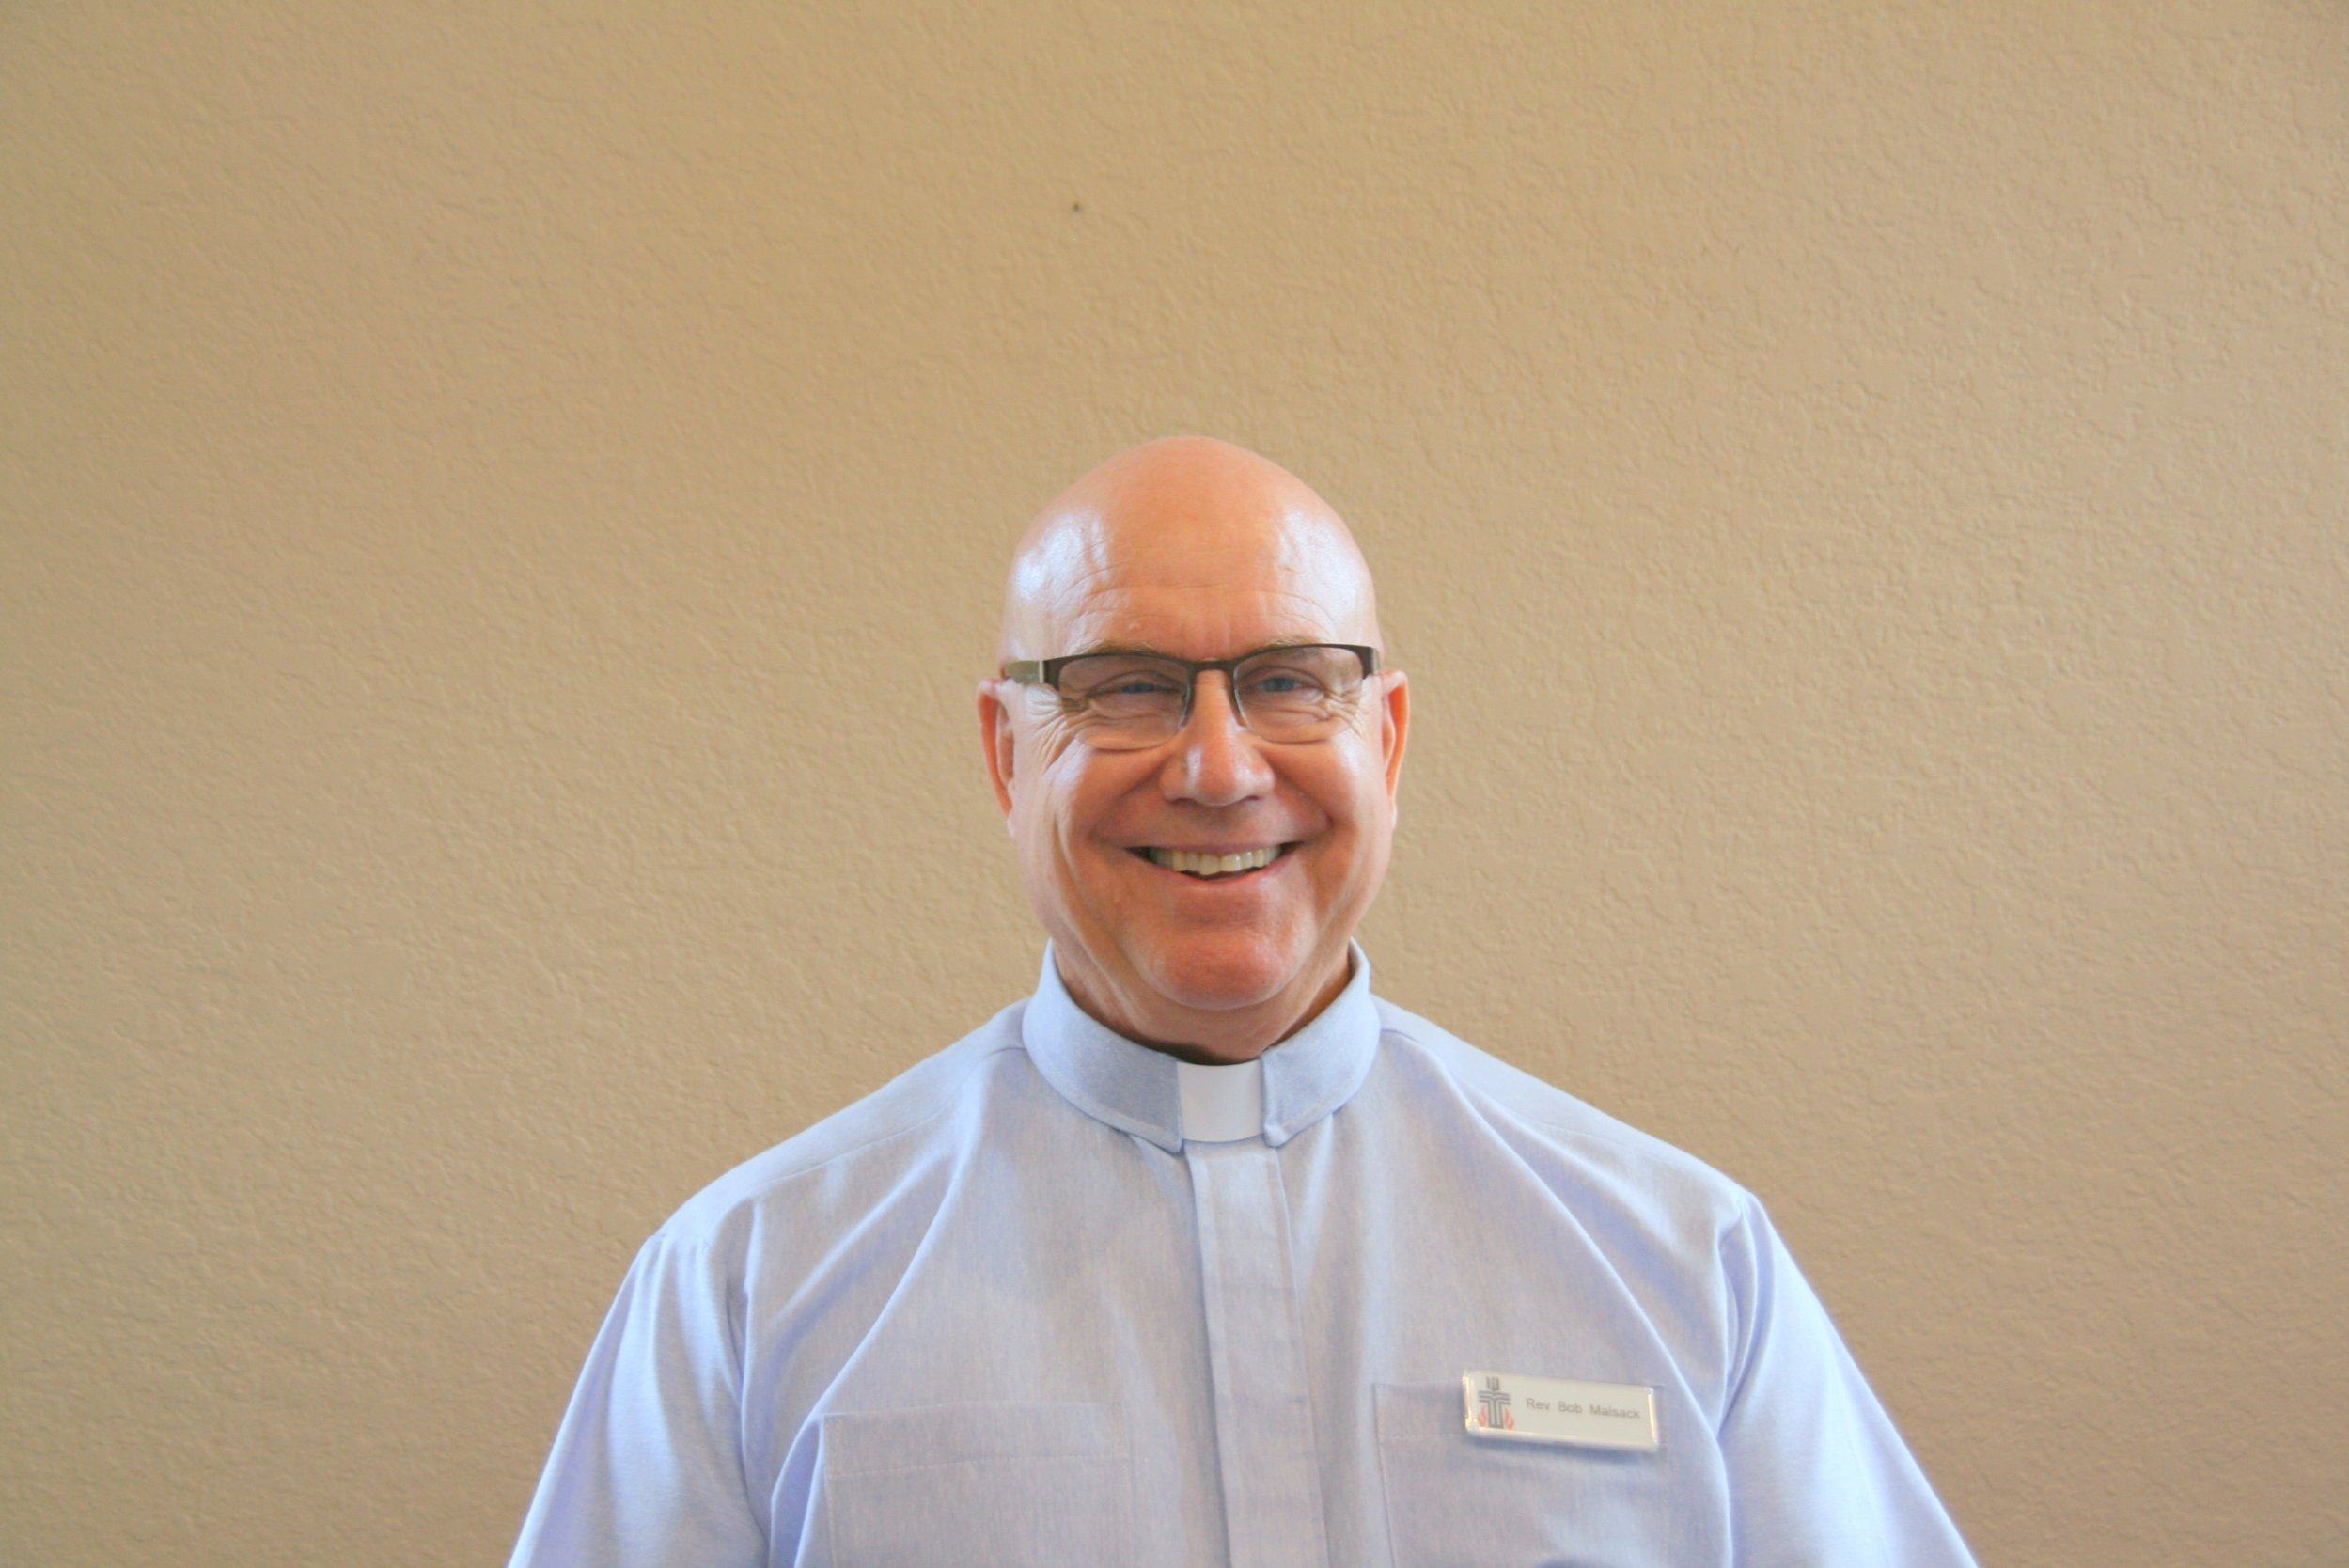 Our Interim Pastor, Bob Malsack